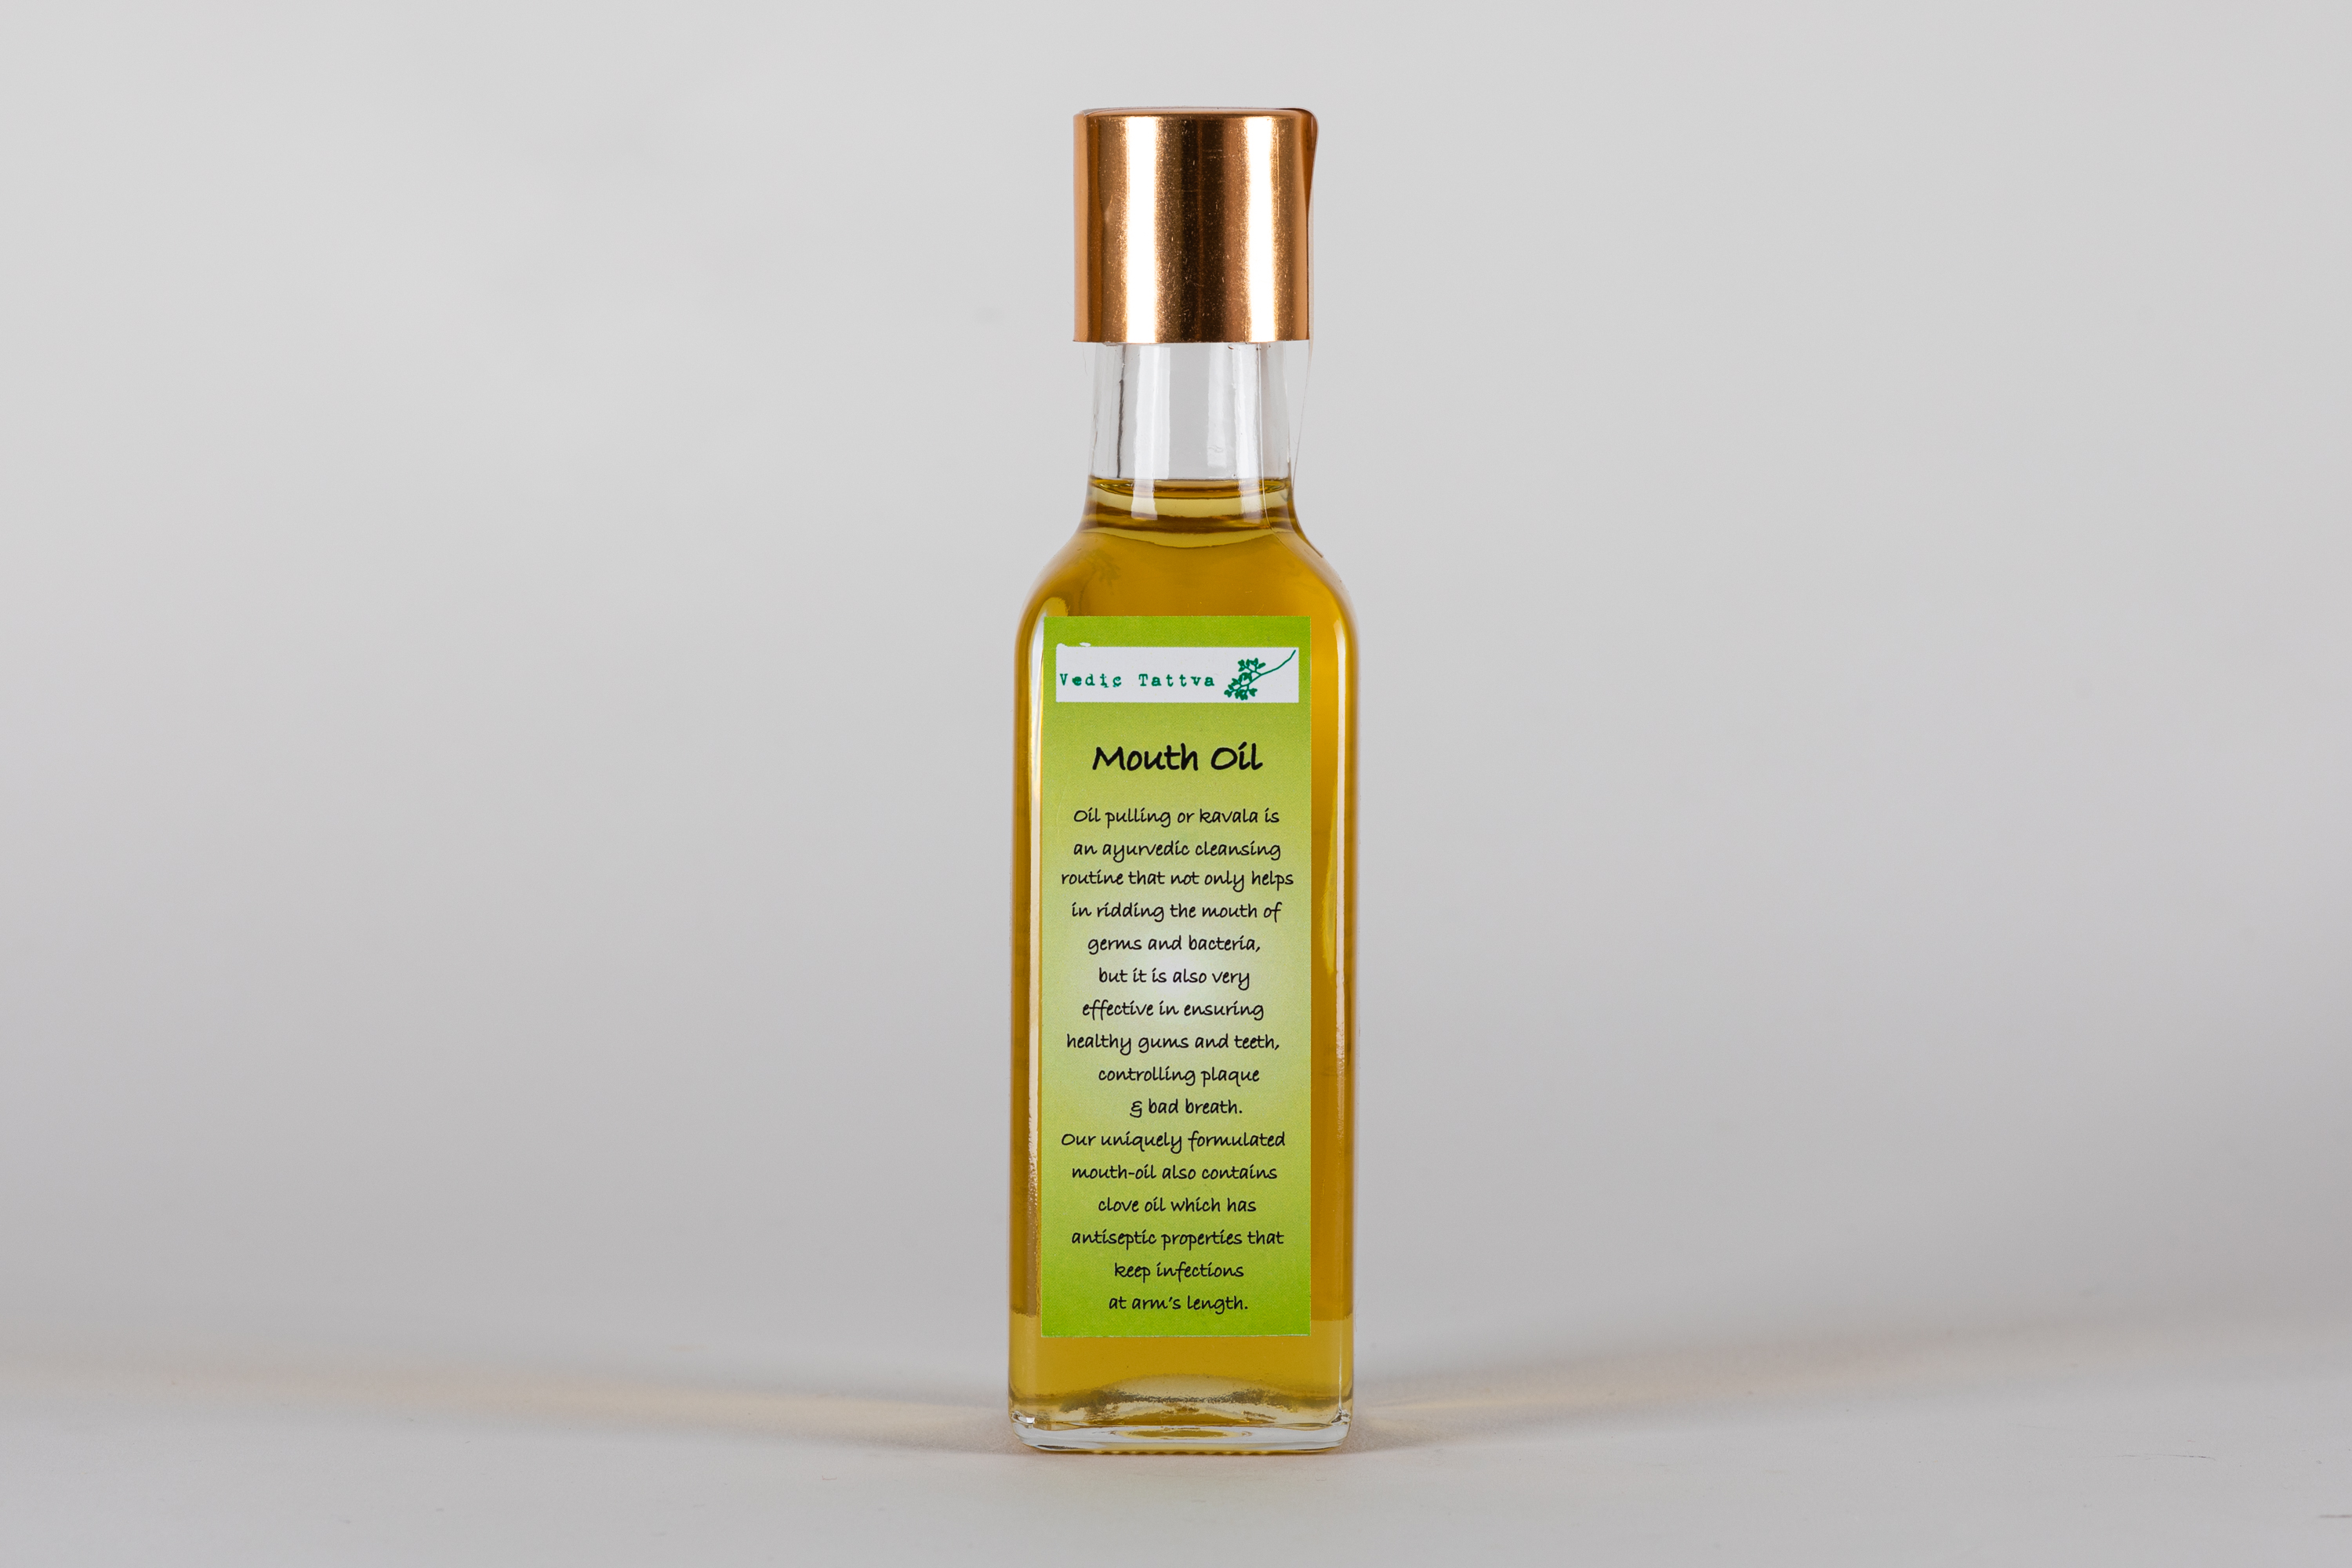 Mouth Oil